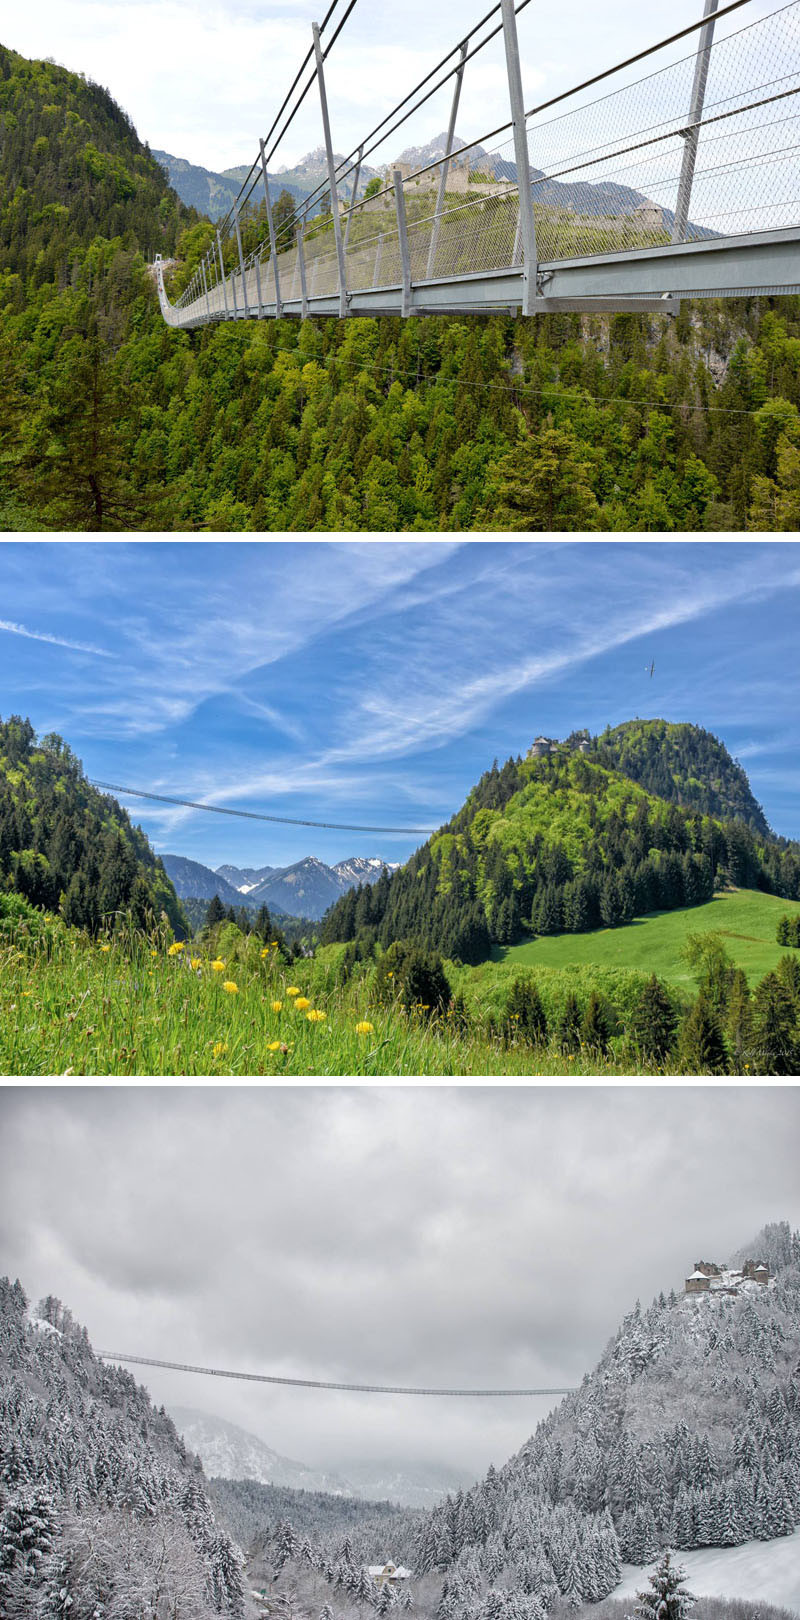 10 Of The Most AMAZING Suspension Bridges In The World // Highline179, in Reutte, Austria, is the longest pedestrian suspension bridge in the world.